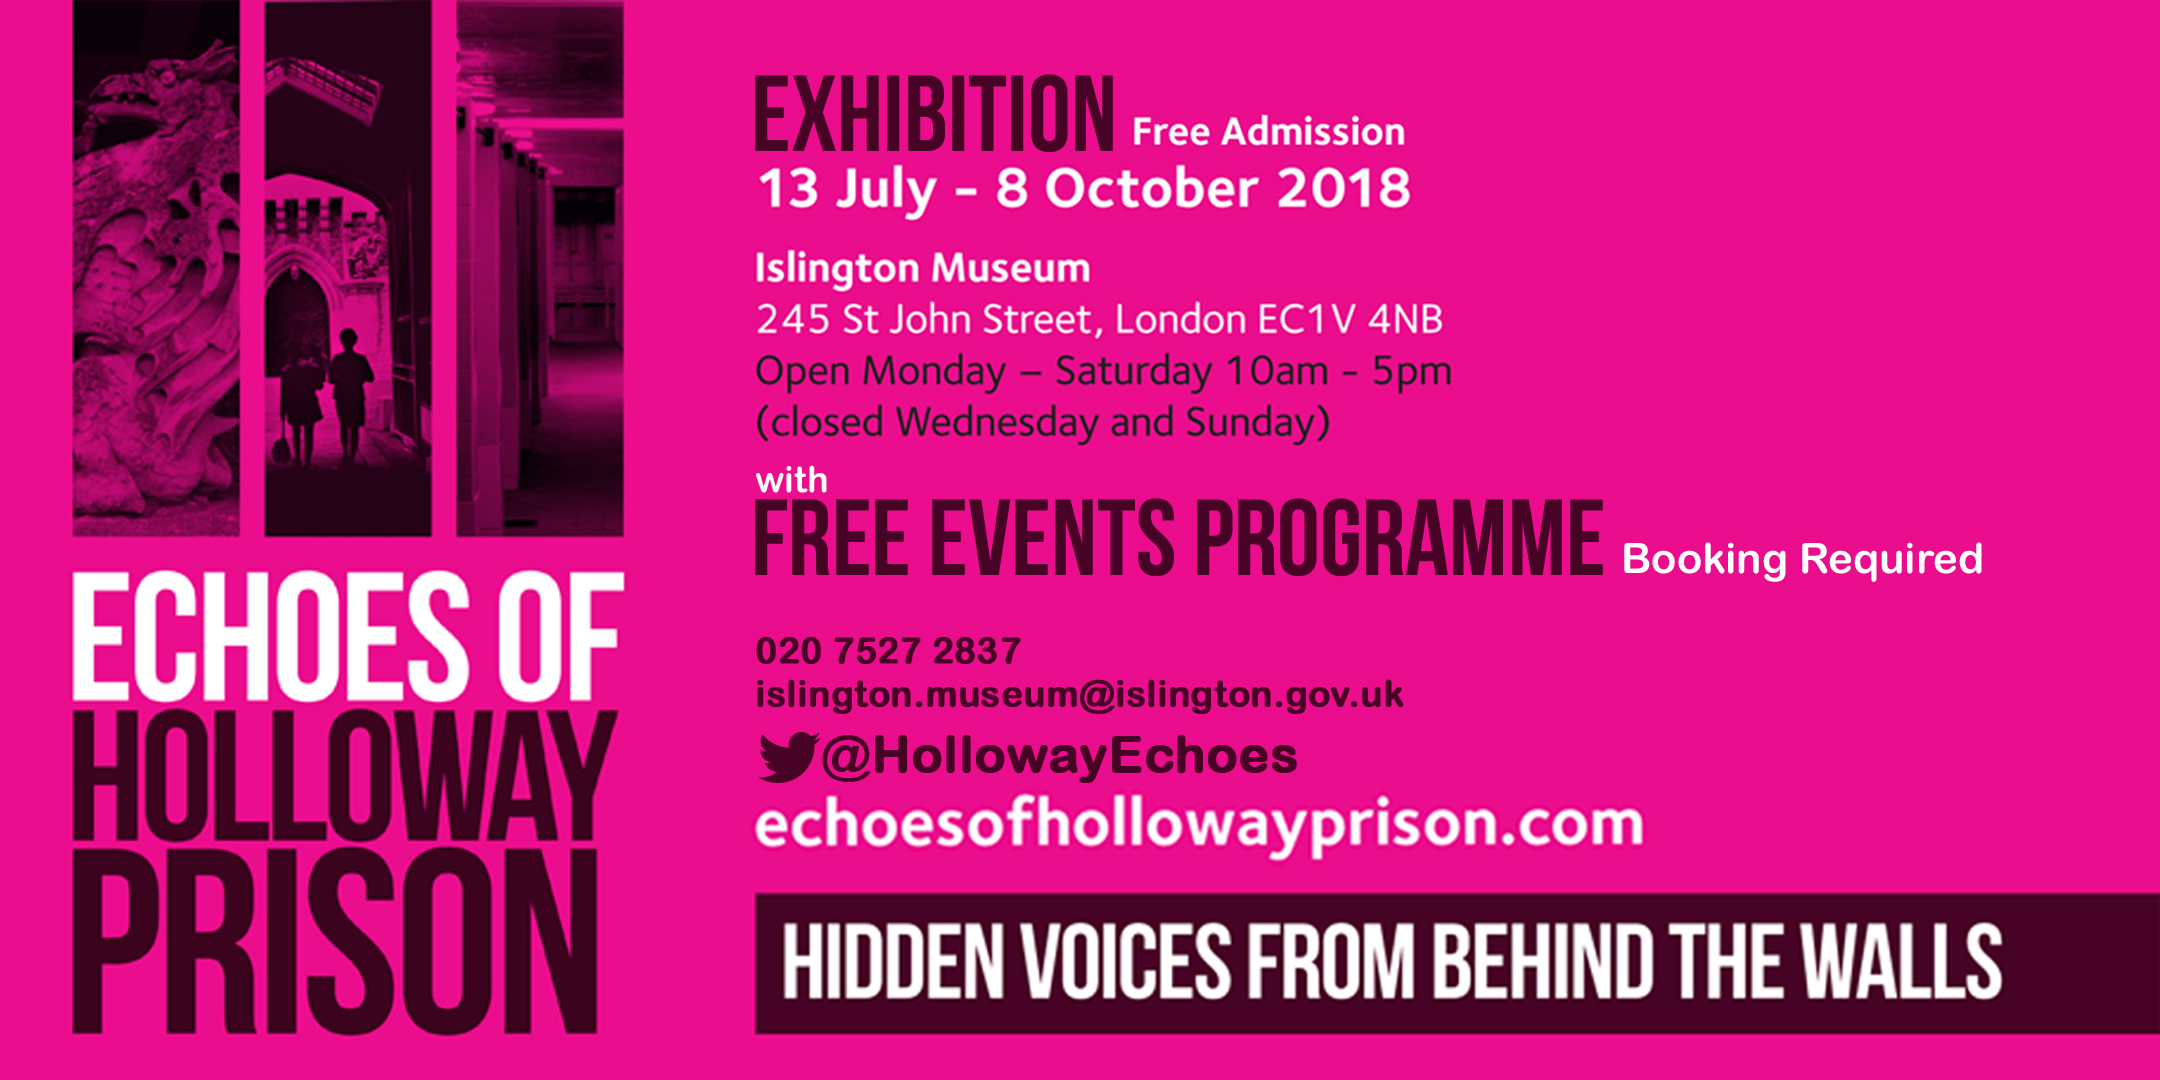 Echoes of Holloway Exhibition